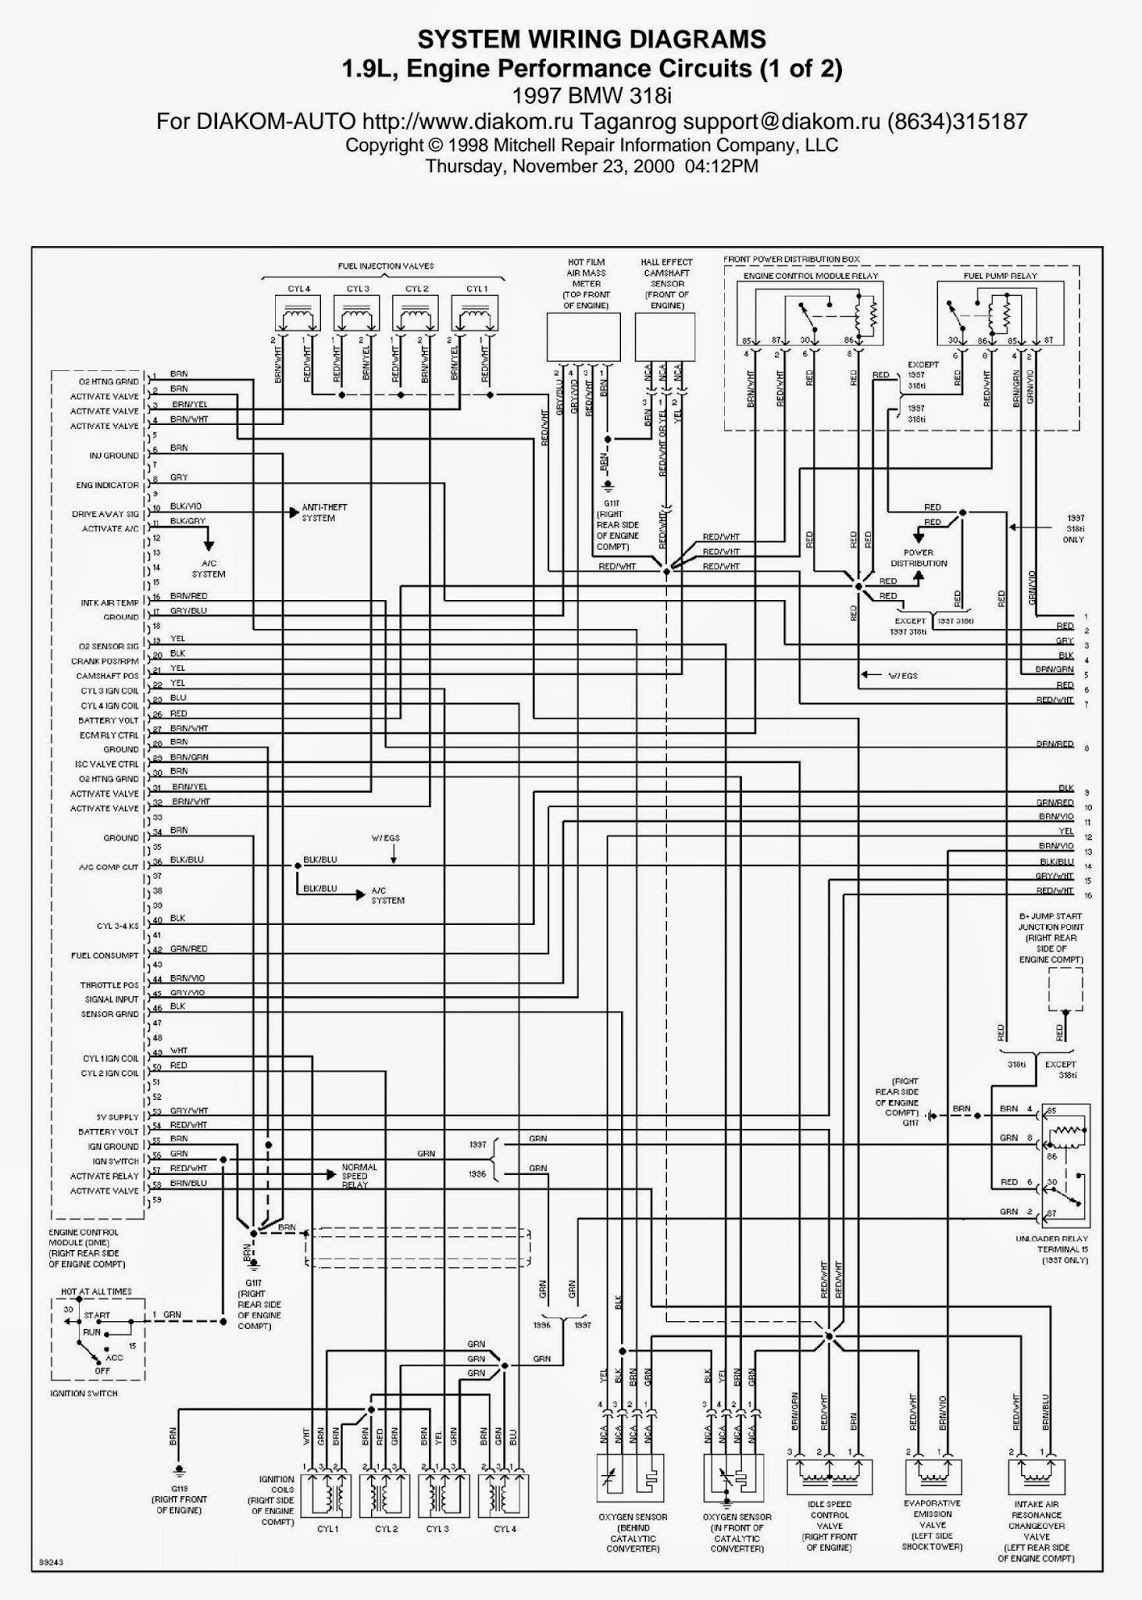 Wiring Diagrams And Free Manual Ebooks  1997 Bmw 318i 1 9l Engine Performance Circuits